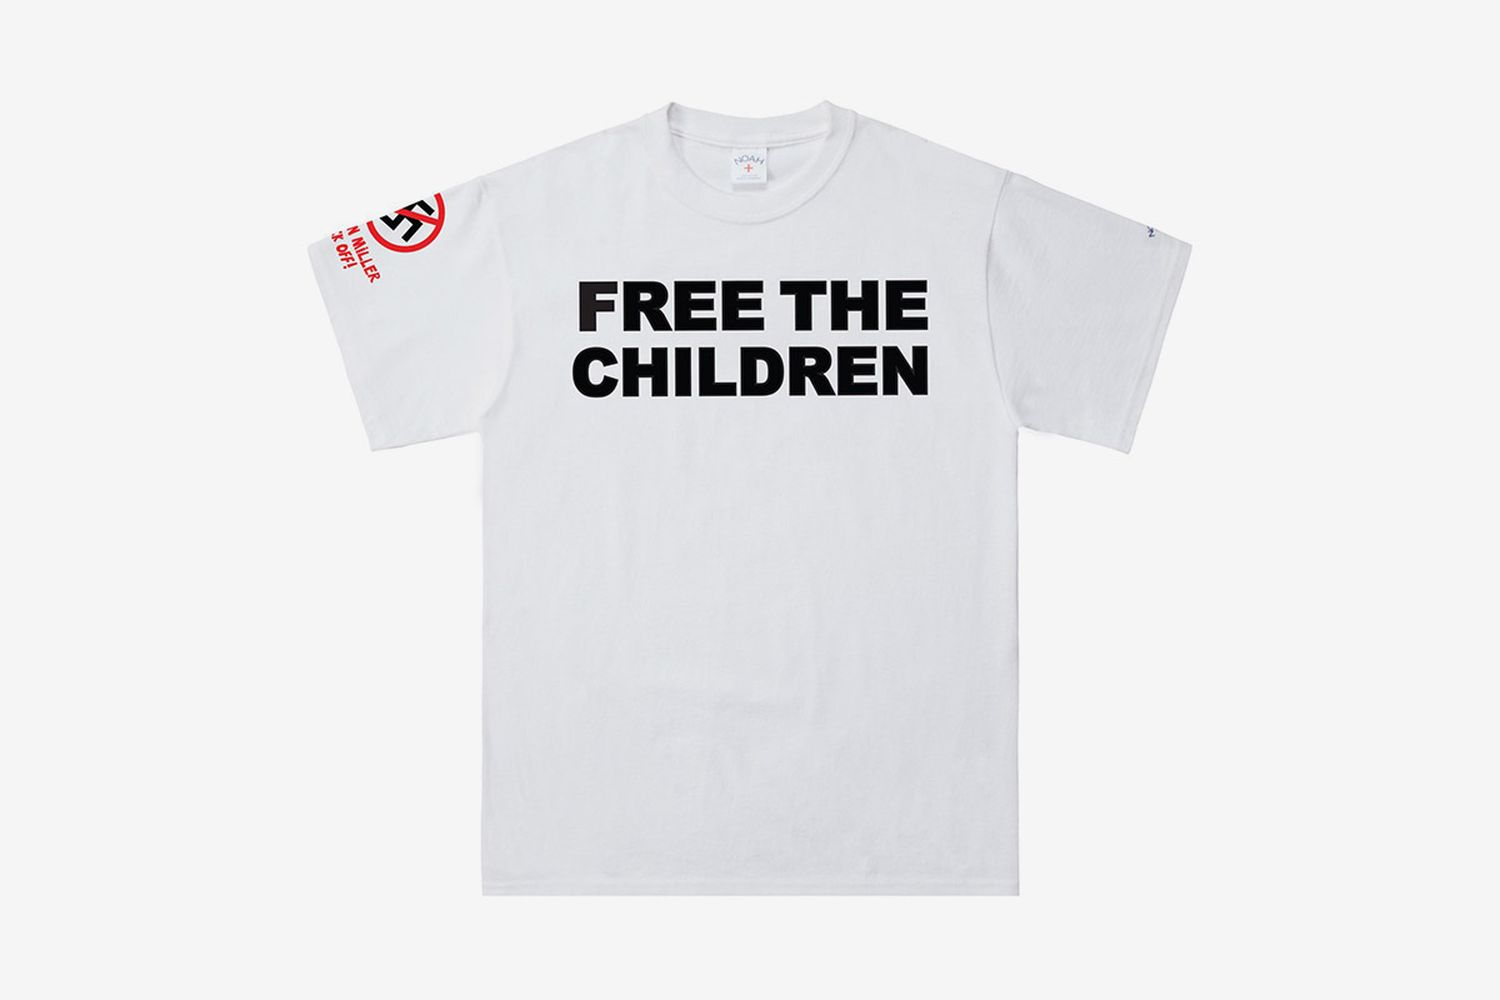 Free The Children T-Shirt